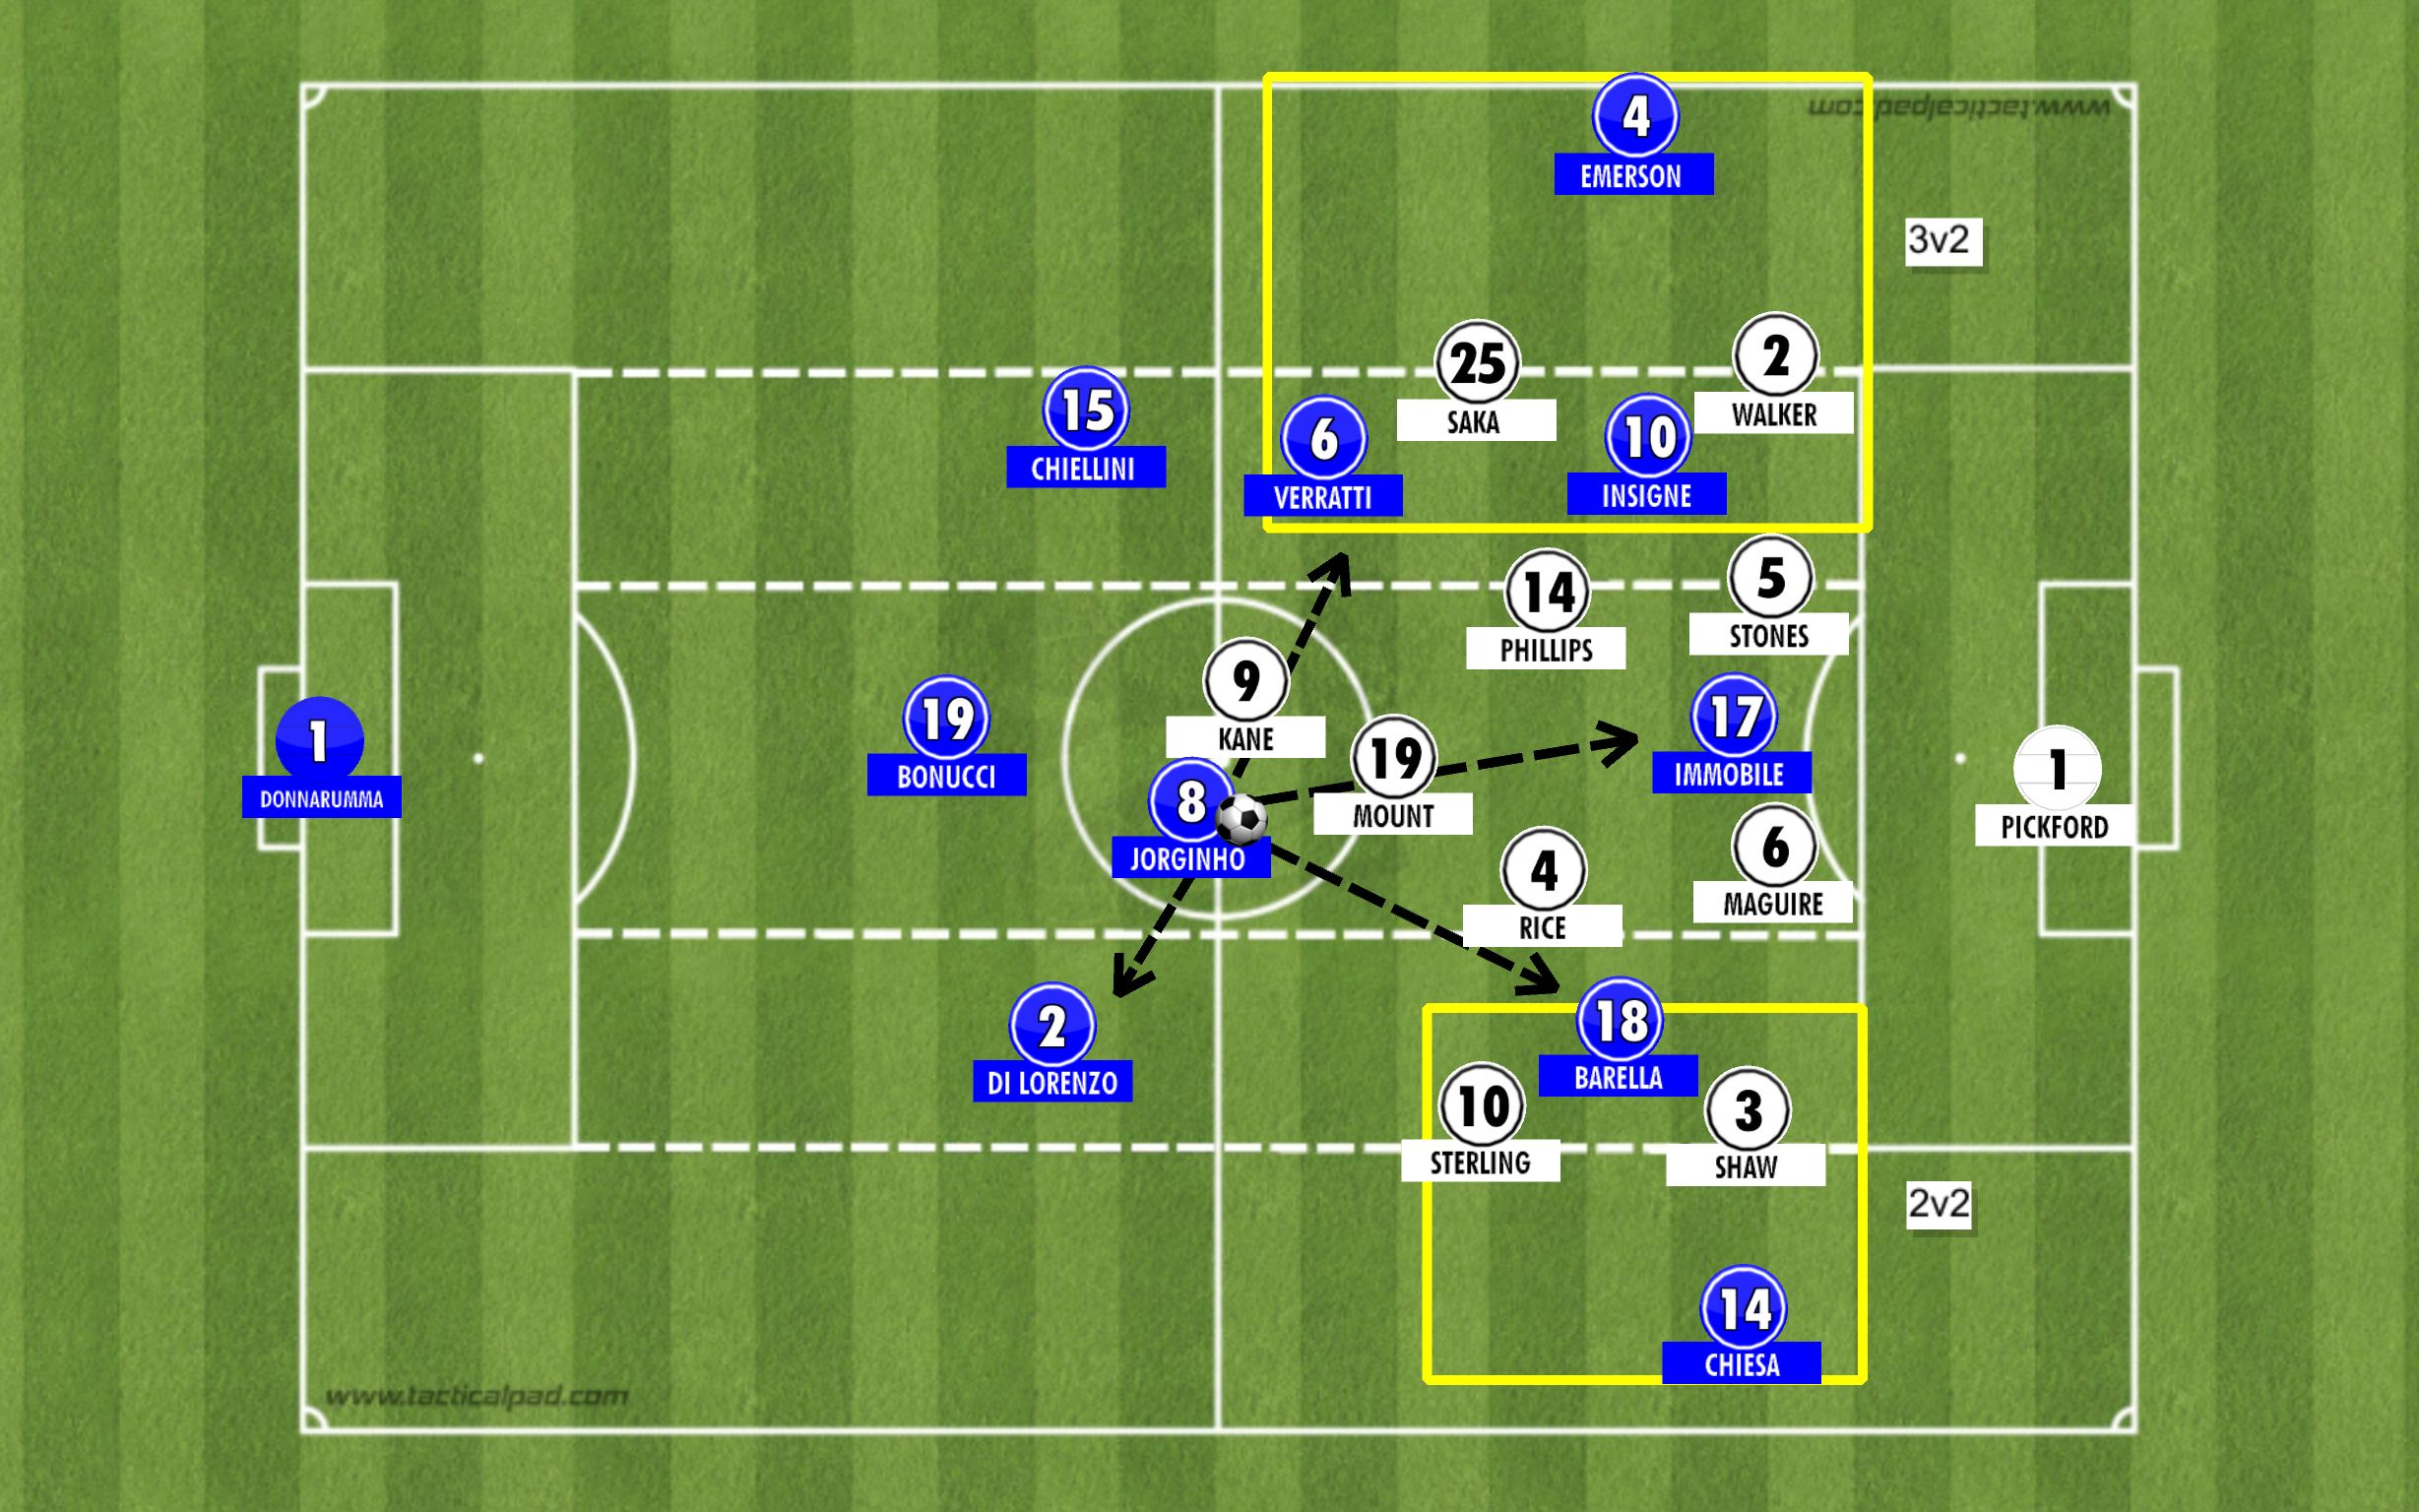 italy in the final third back 4